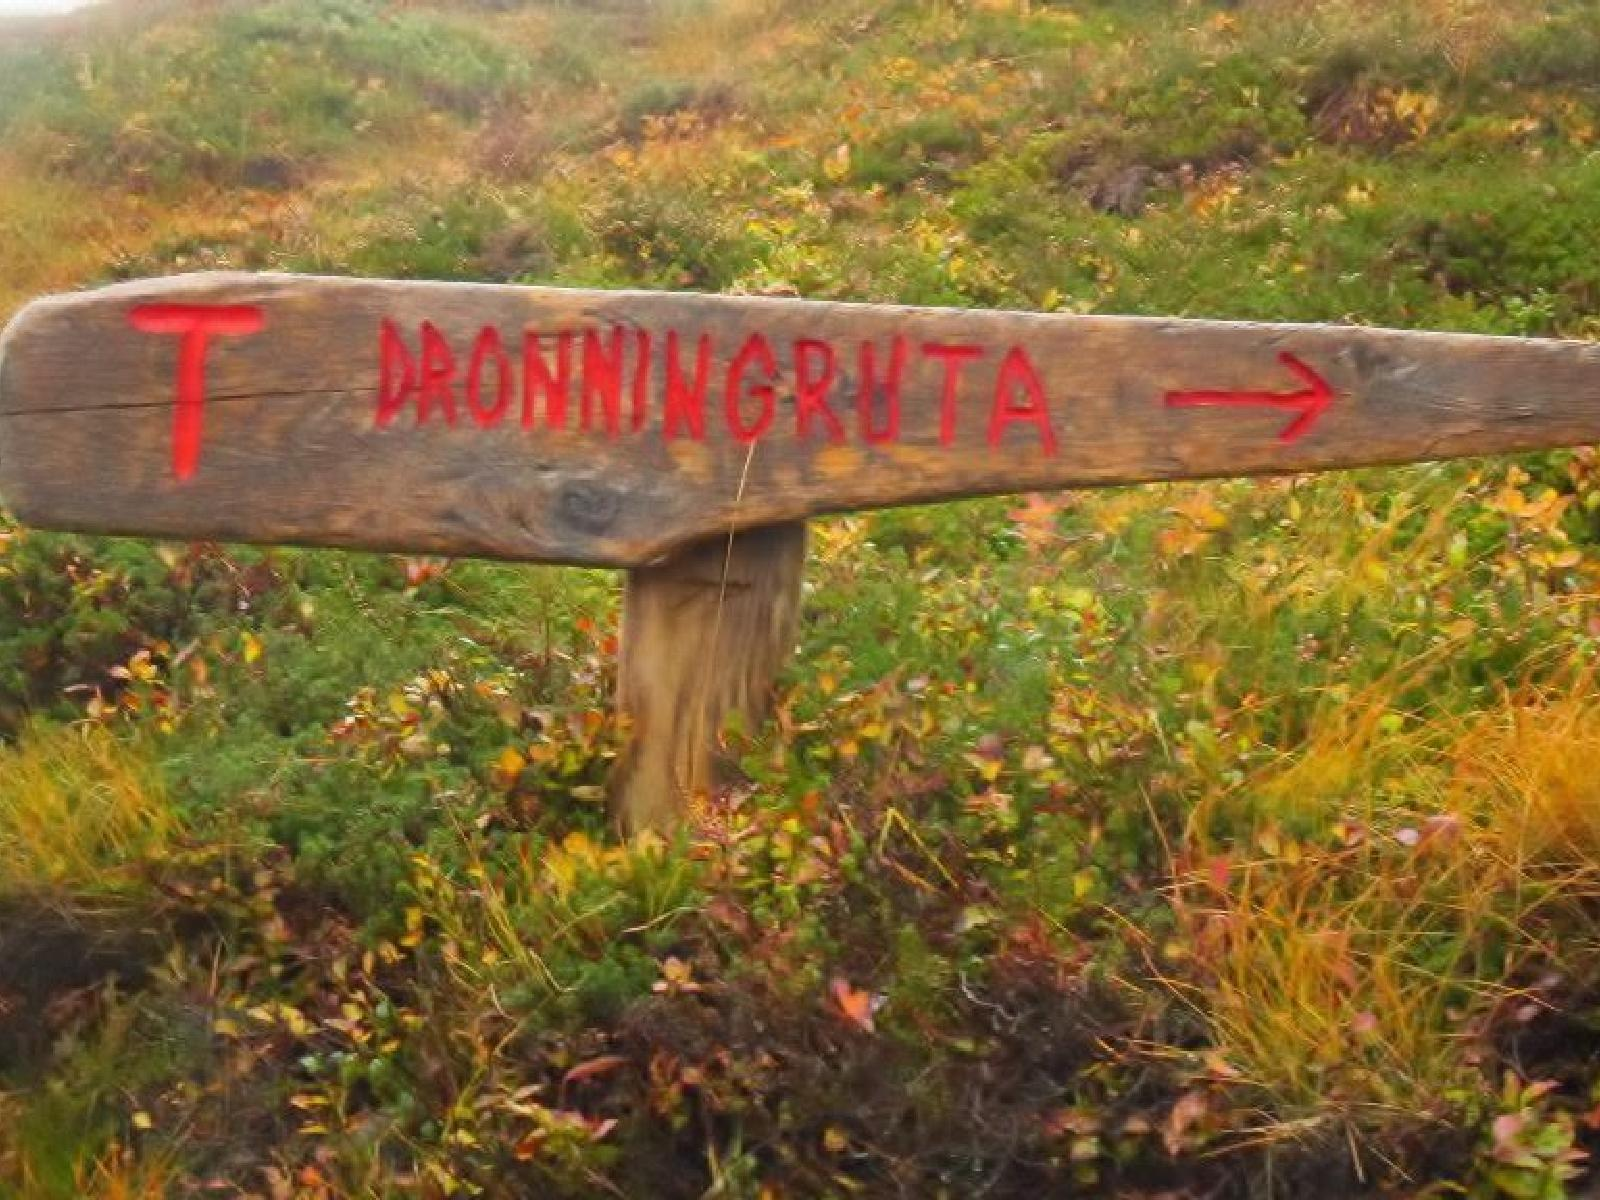 Foto de Dronningruta The Queen's Route from Sto to Nyksund 2015-10-12